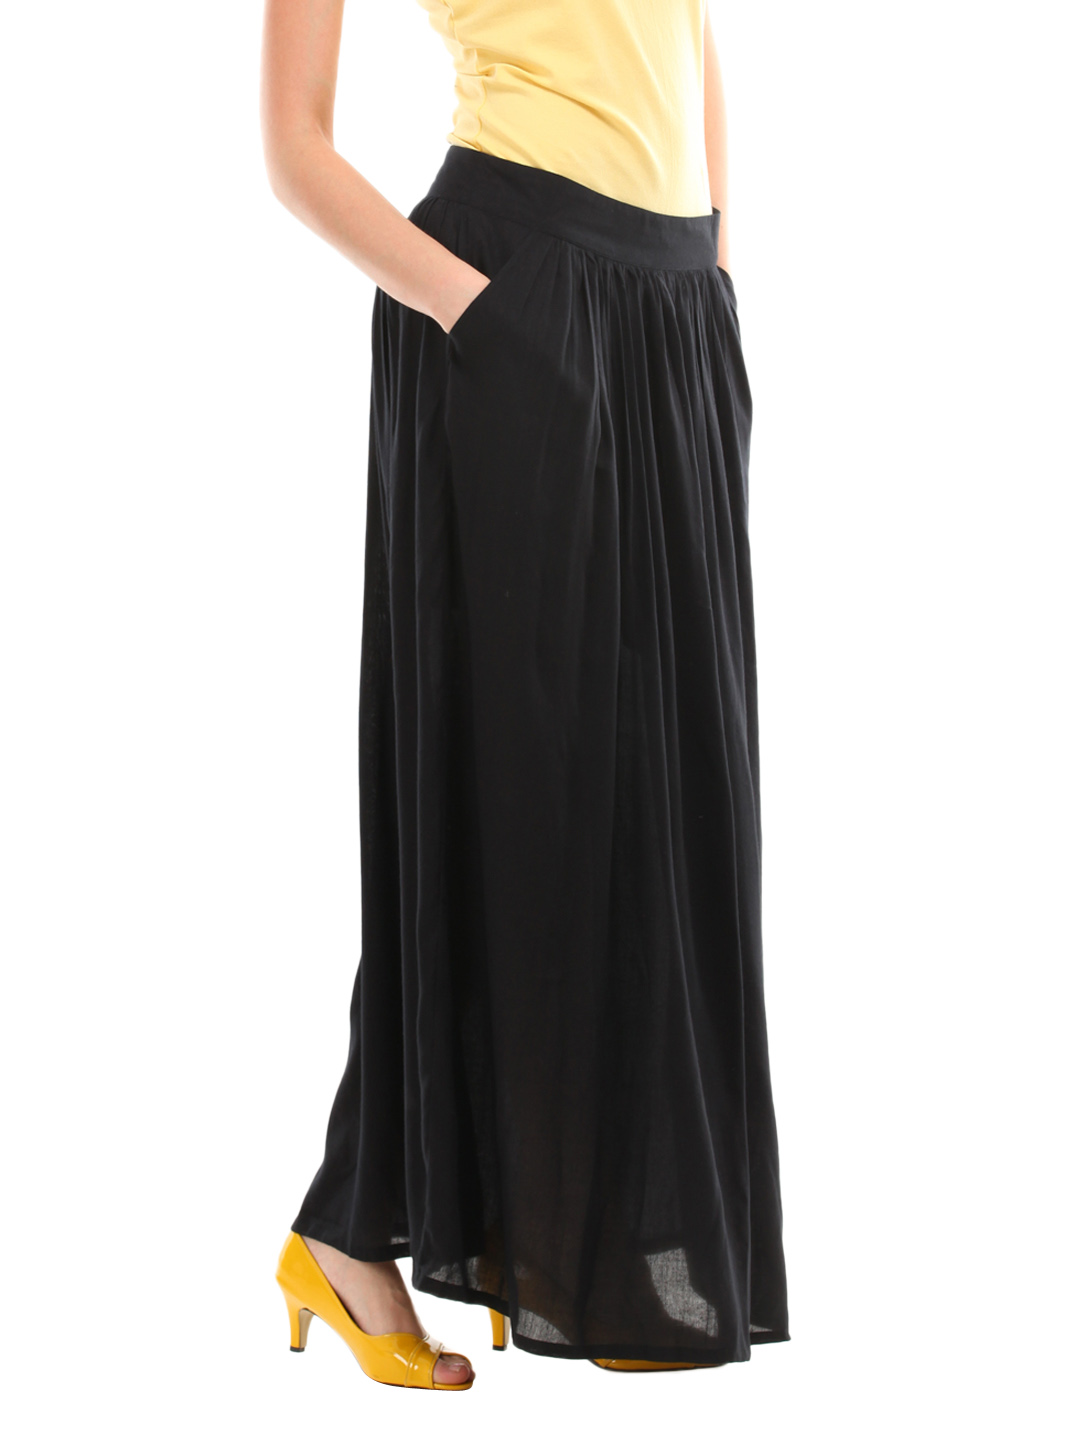 ... Black-Maxi-Skirt_46020d8542d676e3346c80cec6c50d34_images_360_480_mini